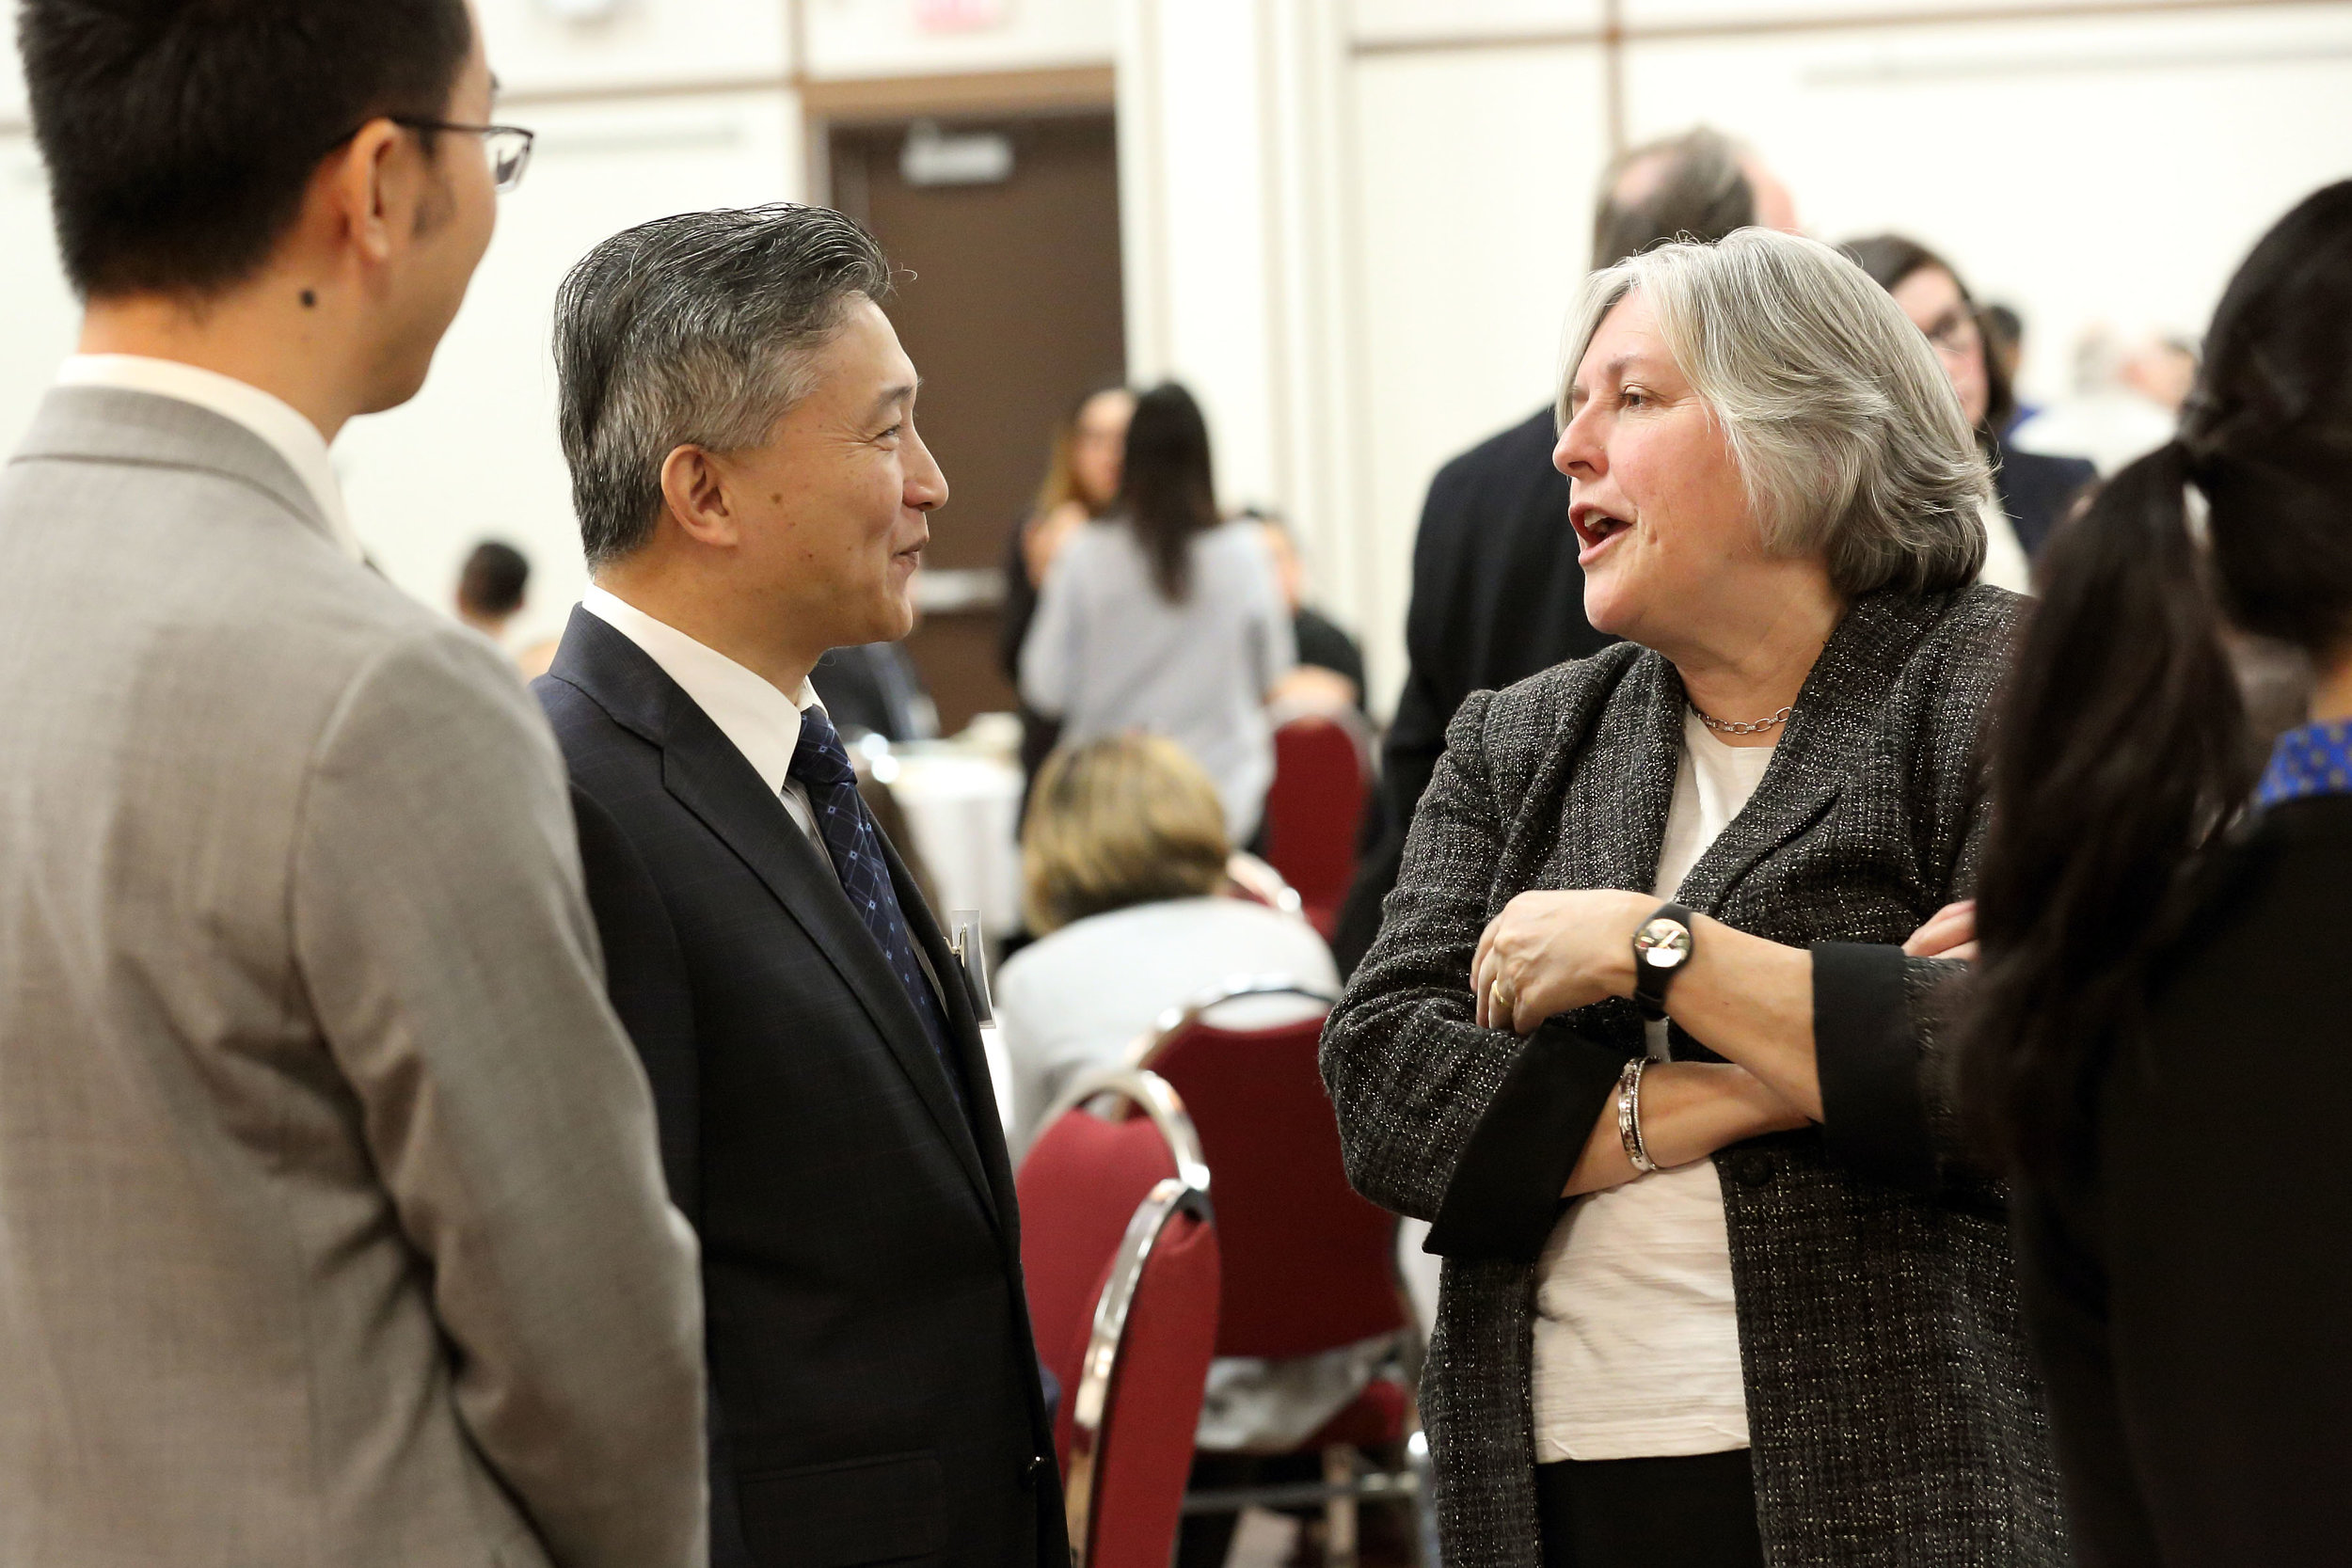 Minister and Counsellor Xia Xang, Embassy of the People's Republic of China to Canada, with Dean Pat Bradshaw, Sobey School of Business